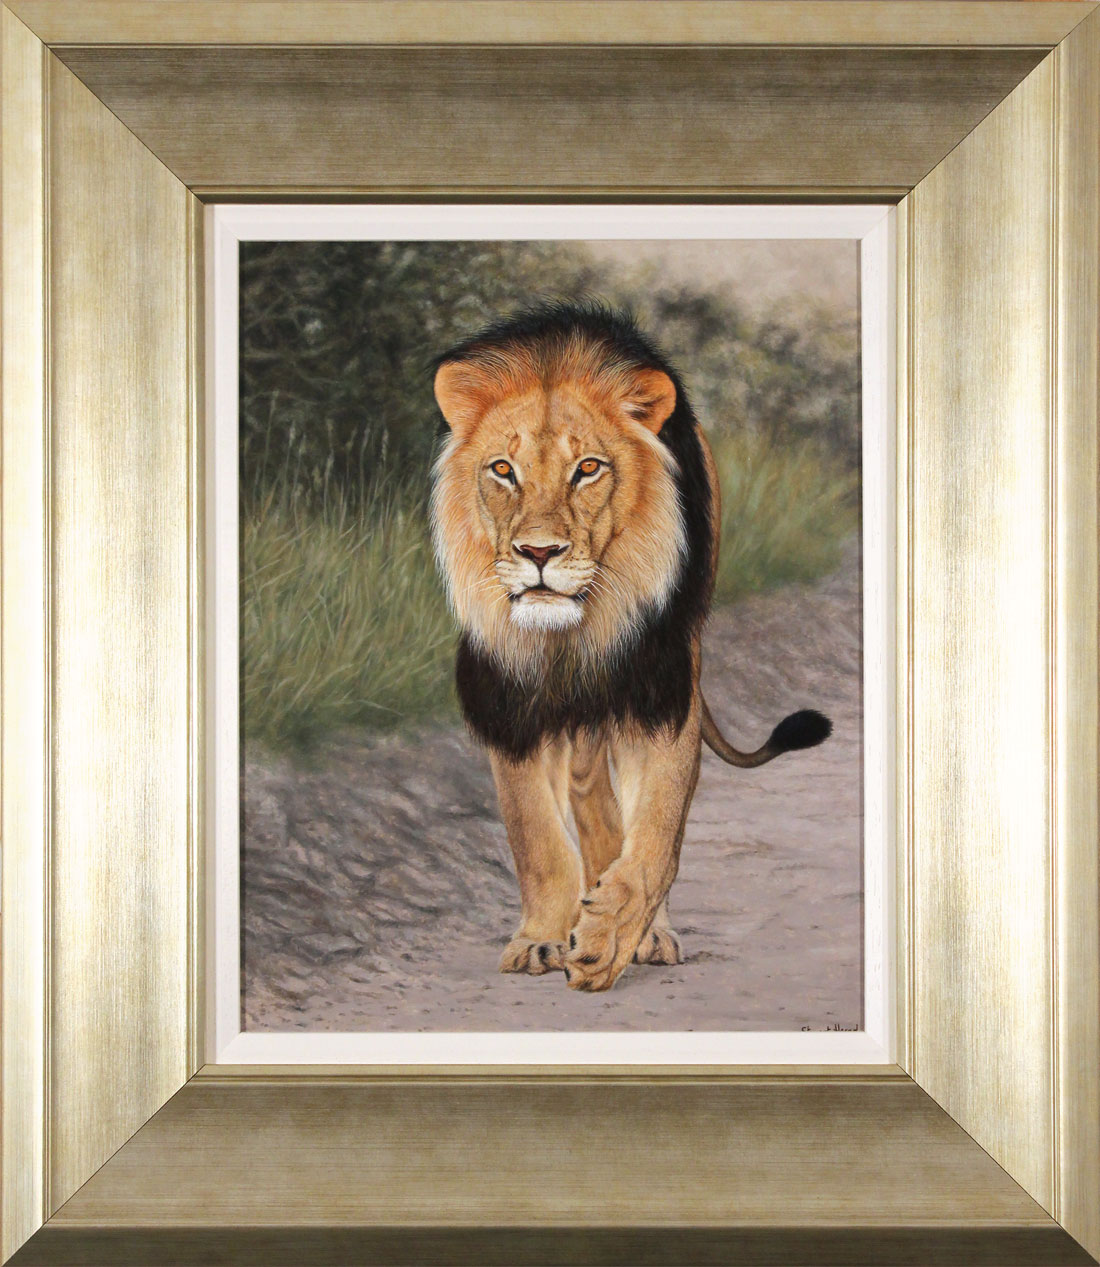 Stuart Herod, Original oil painting on panel, Lion, click to enlarge